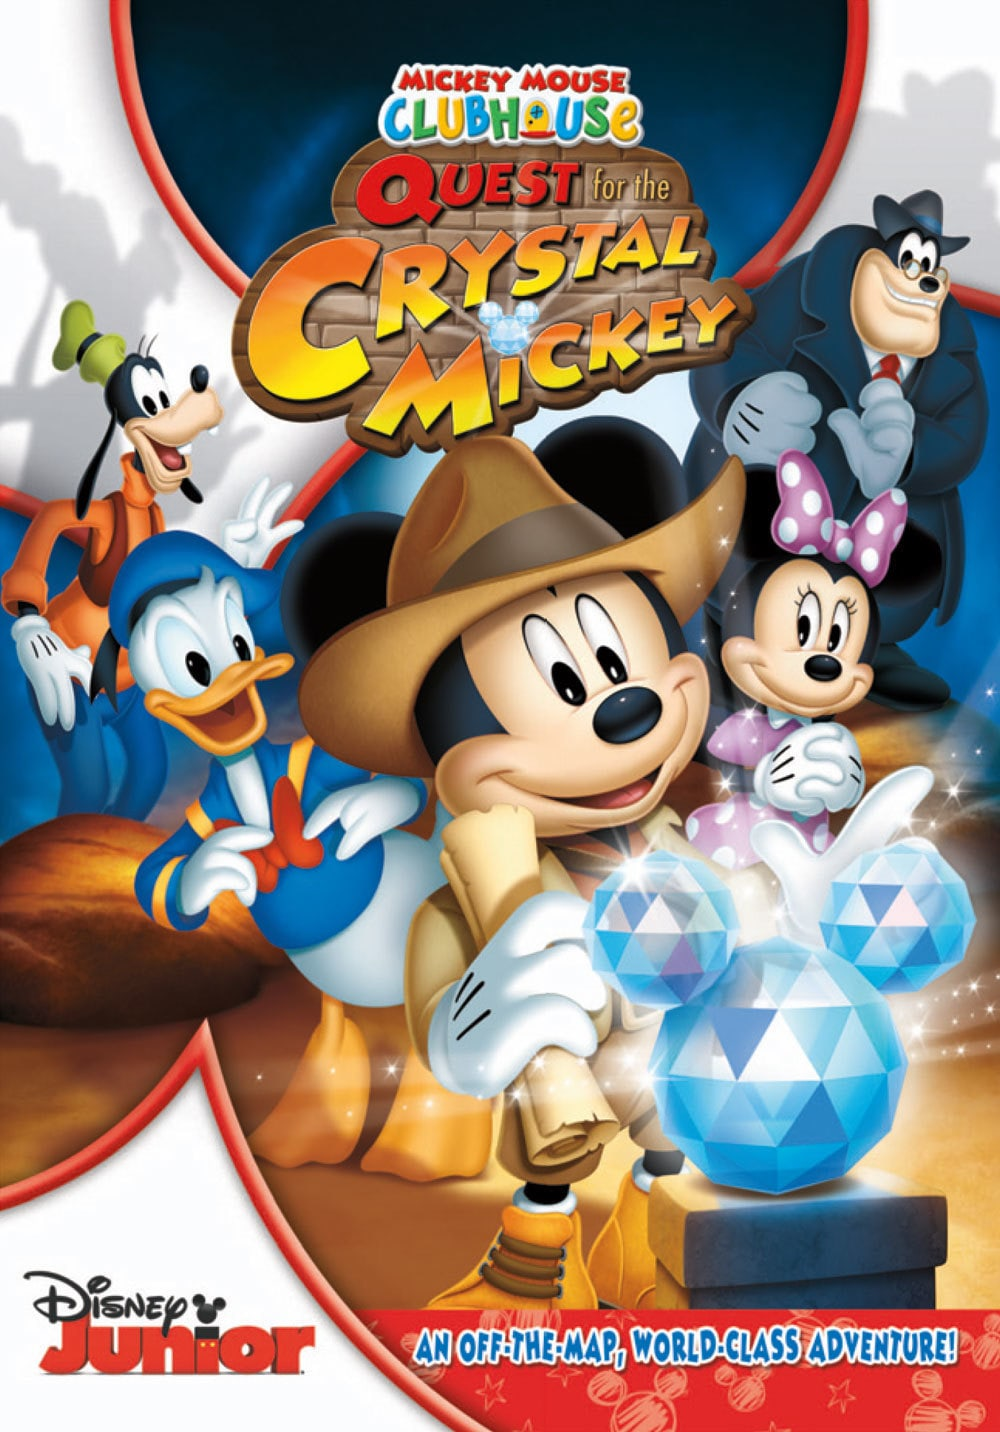 Disney Movie World Map.Mickey Mouse Clubhouse And The Quest For The Crystal Mickey Disney